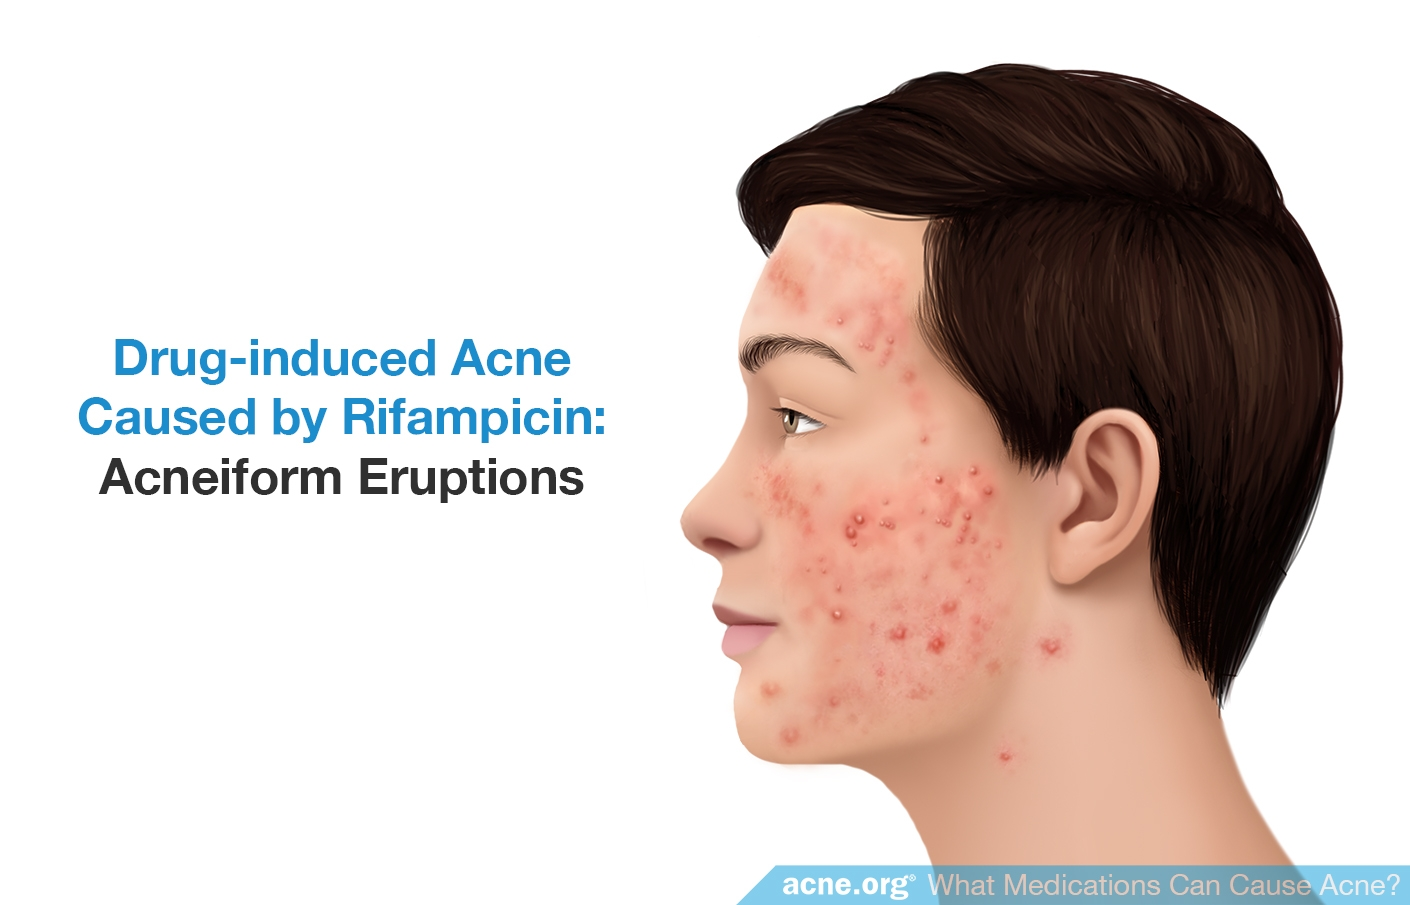 Drug-induced Acne Caused by Rifampicin